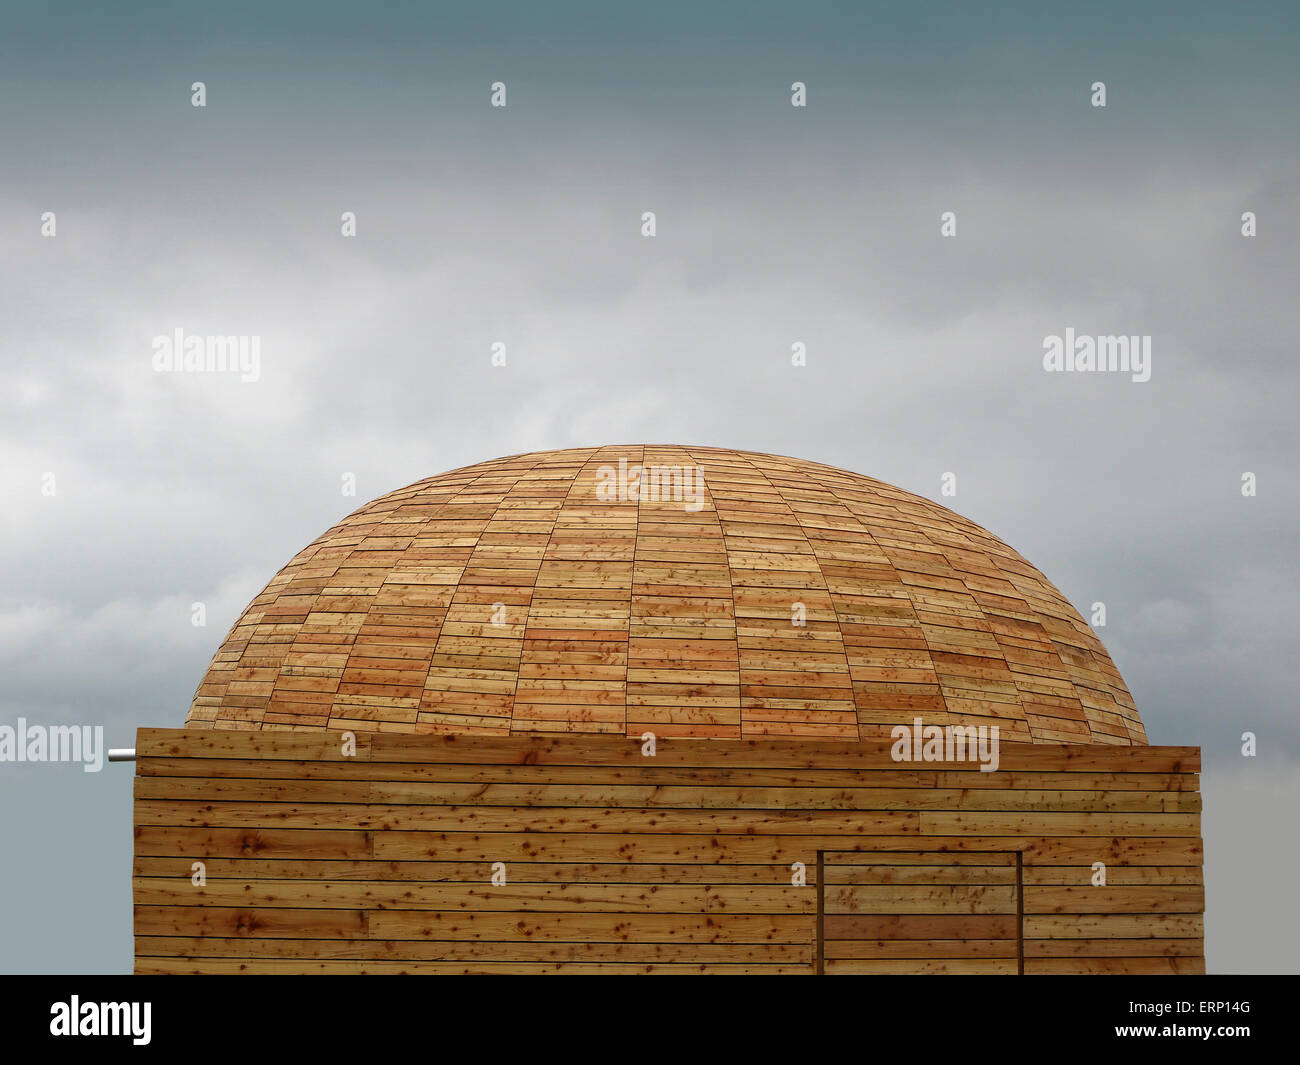 dome-shaped chapelle by wood - Stock Image